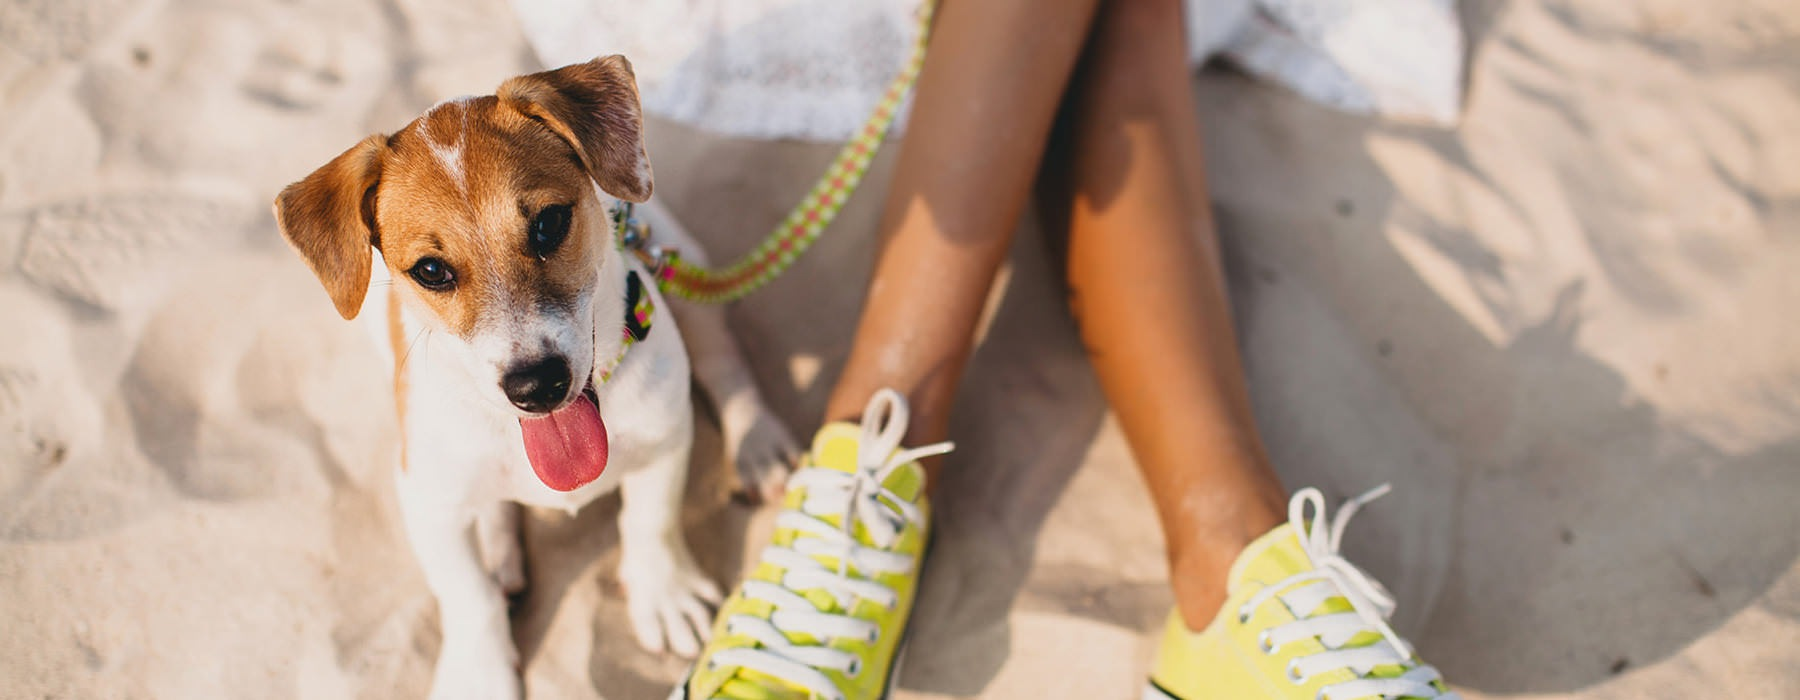 doggie on a leash sits in the sand next to his master in sneakers